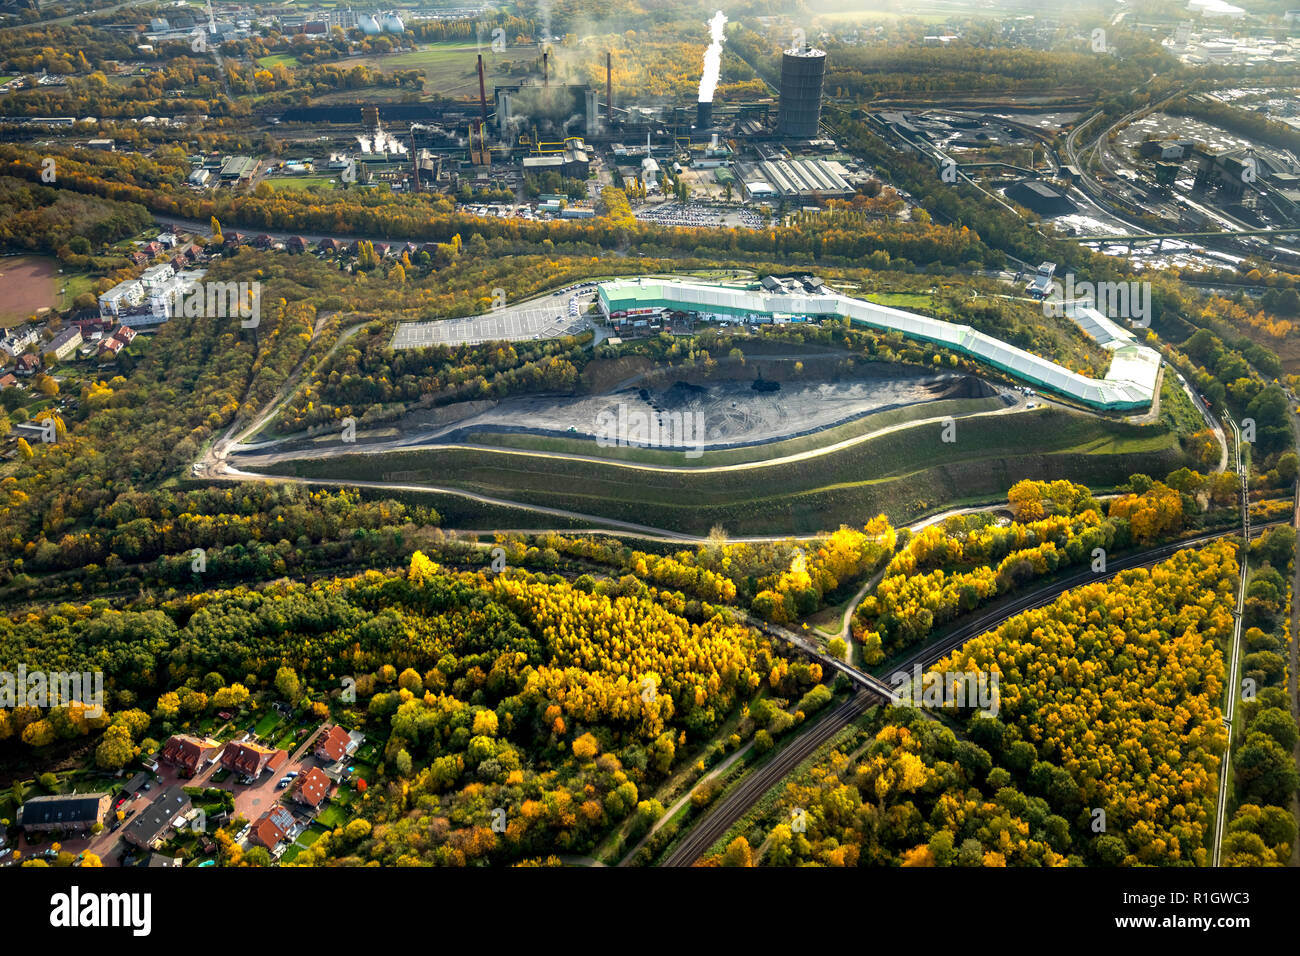 Aerial View, embankment on the heap Bottrop, alpincenter Bottrop, stockpile safety, INTERSPORT ALPINE CENTER, lifting Leak Street, earthworks on the h - Stock Image